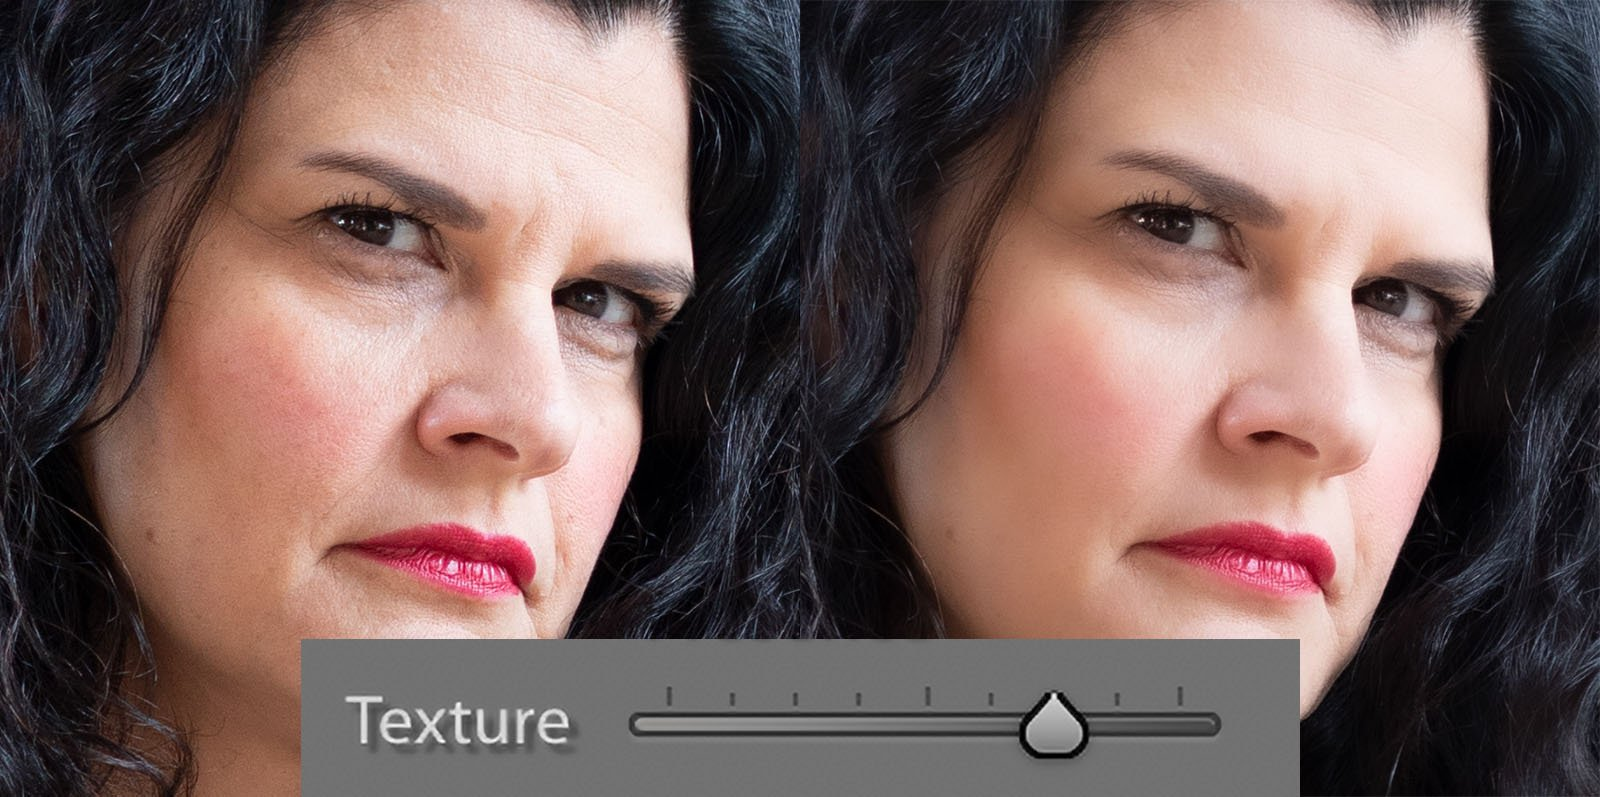 Tech News: Adobe Adds 'Texture' Control Slider to Lightroom and Camera Raw - PetaPixel thumbnail